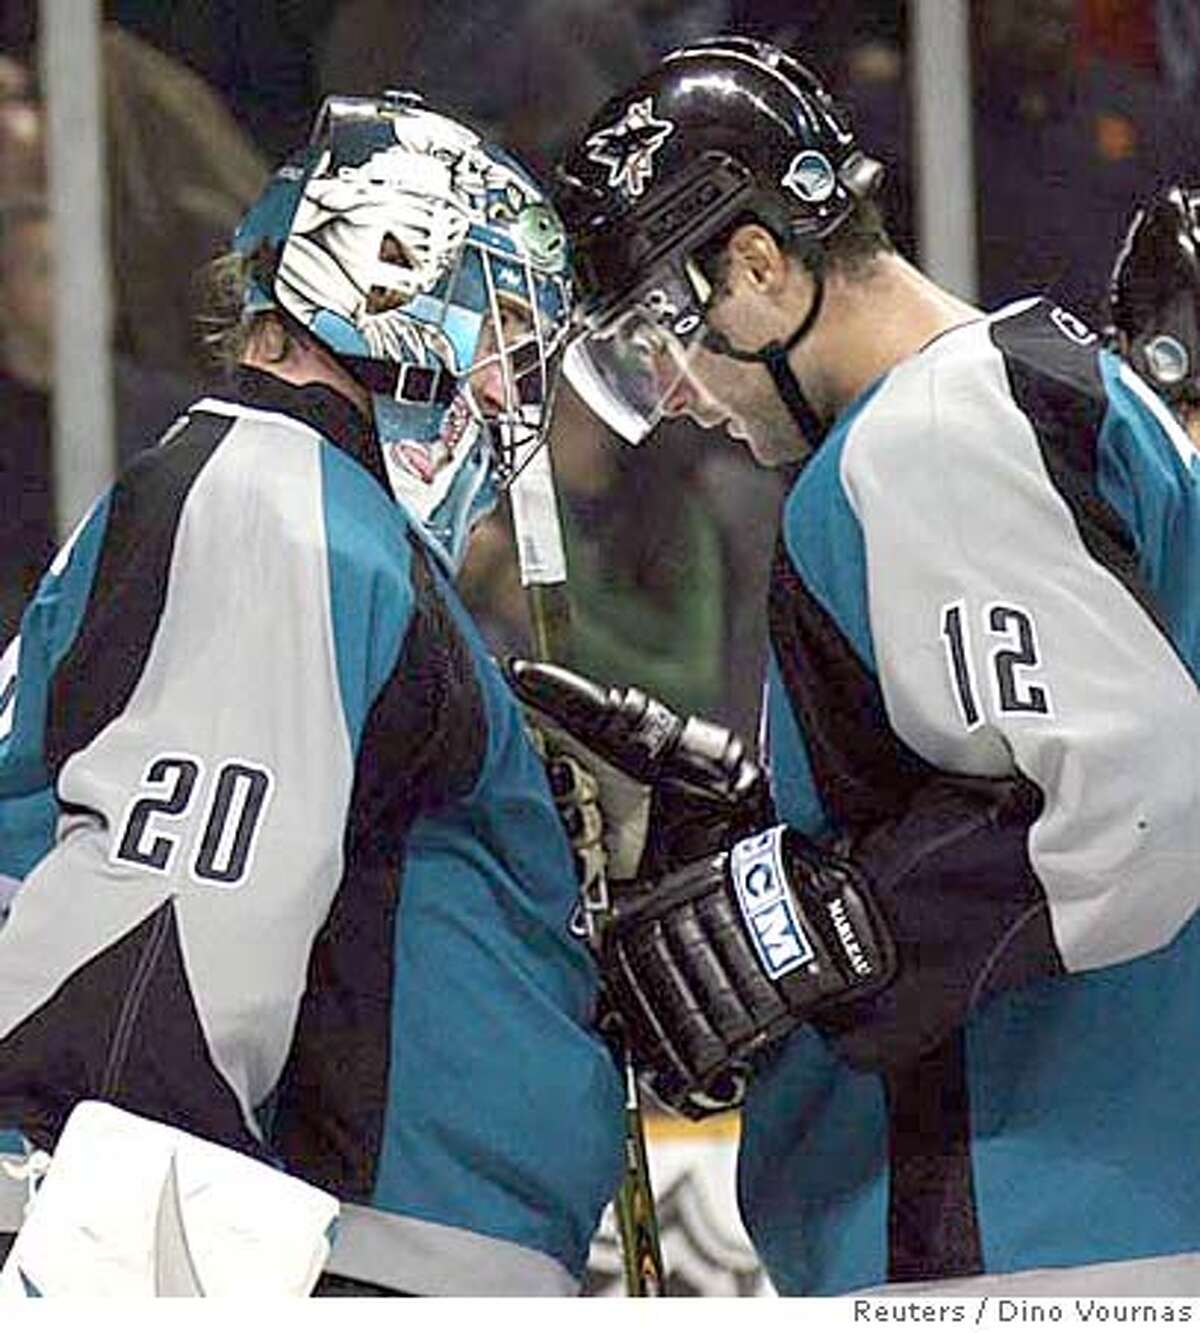 The San Jose Sharks' Patrick Marleau (12) butts helmets with goalie Evgeni Nabokov of Kazahkstan after they defeated the New York Islanders' 2-0 in an NHL hockey game in San Jose, California, October 7, 2006. REUTERS/Dino Vournas (UNITED STATES)